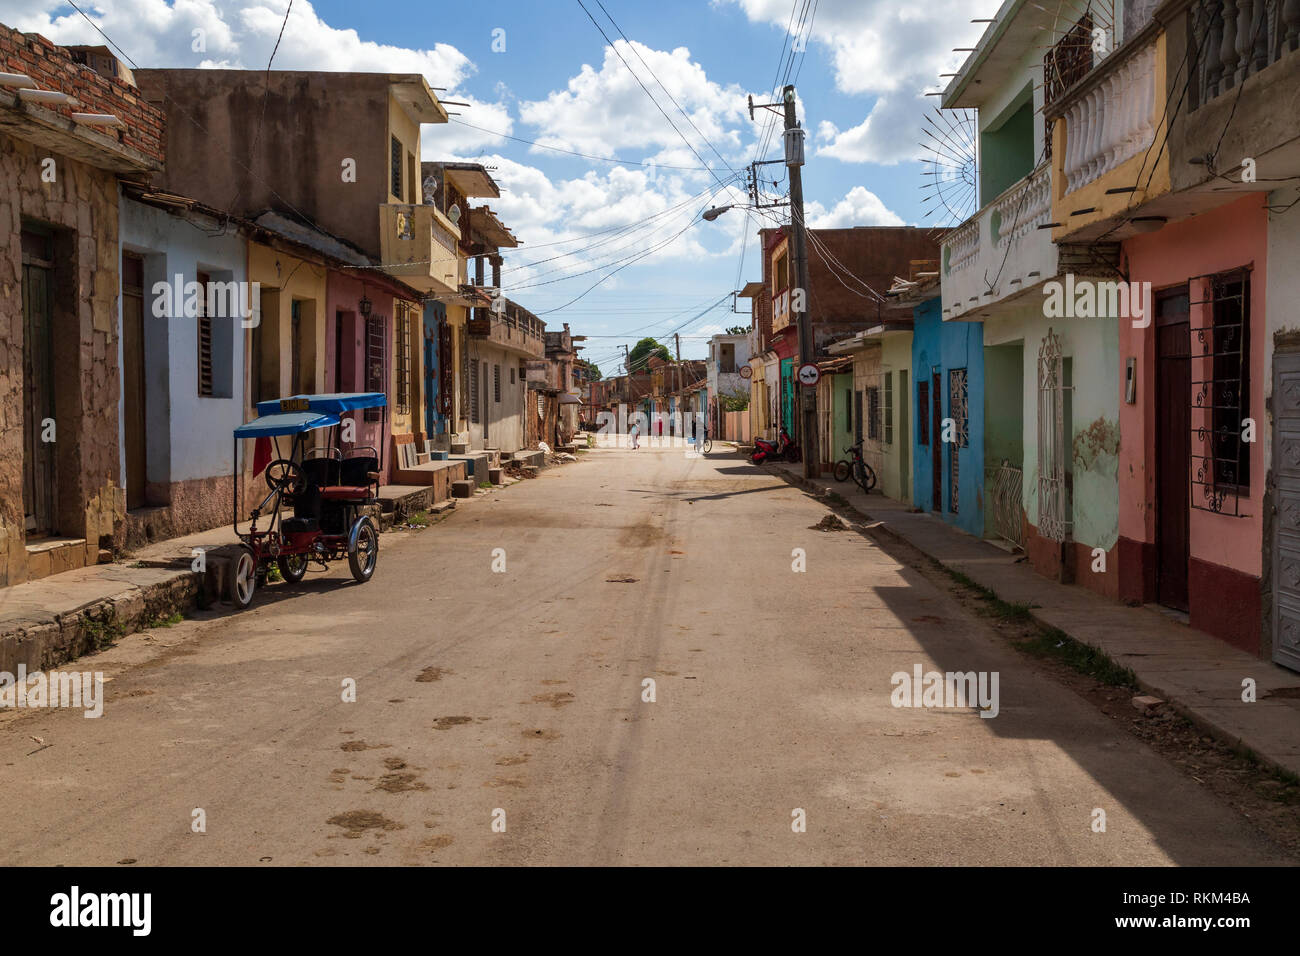 View at a street in Trinidad with typical tacky houses, Cuba - Stock Image